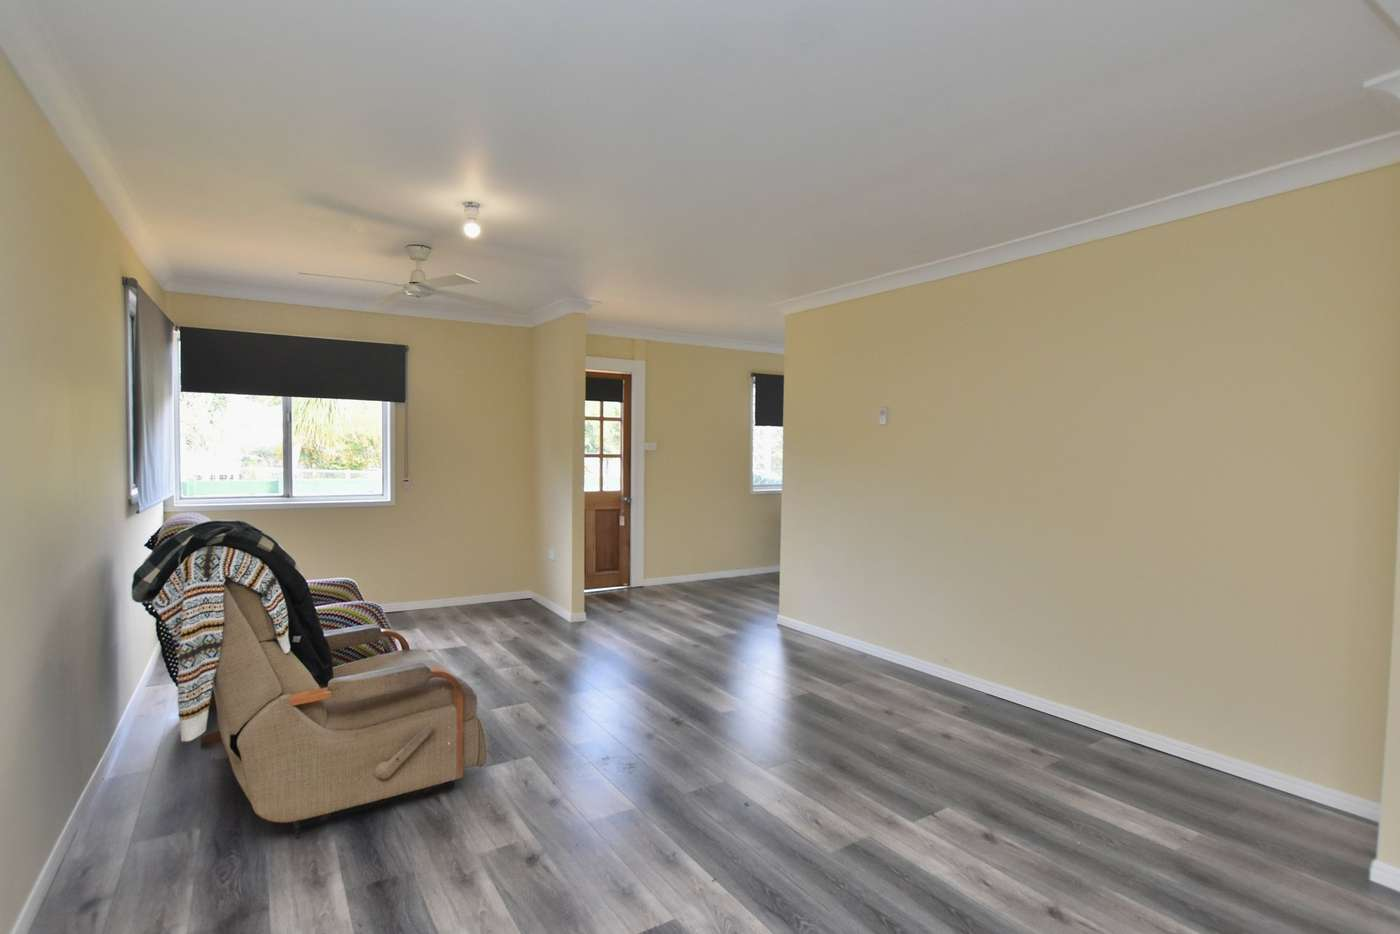 Sixth view of Homely house listing, 7 Gloucester Street, Woodford QLD 4514